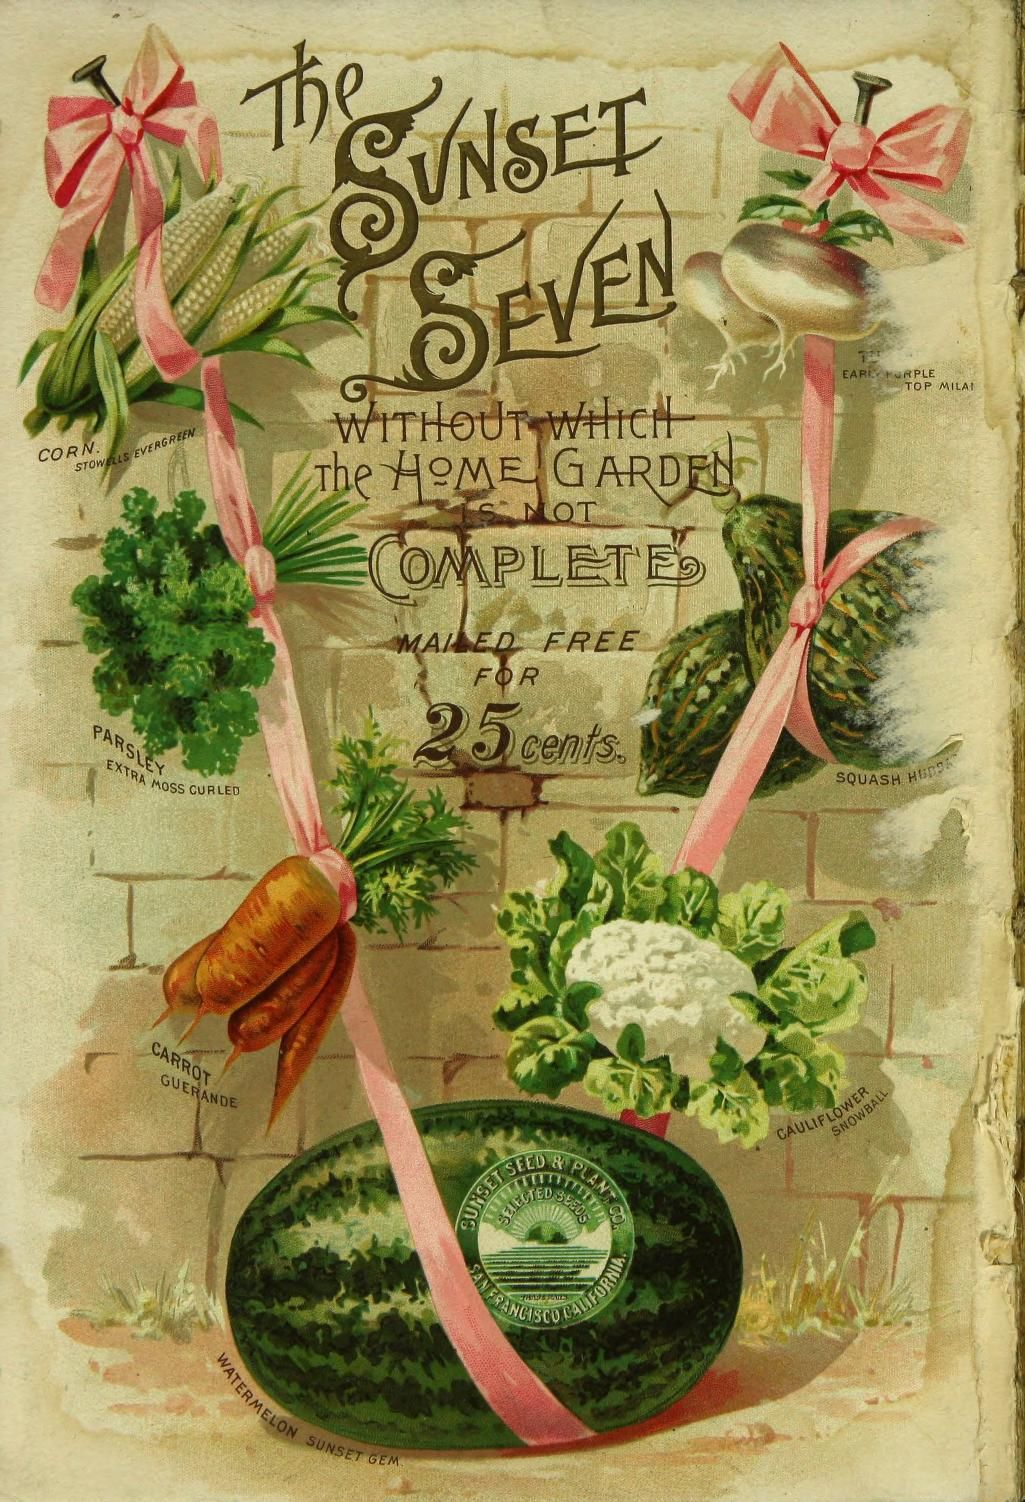 A collection of nursery and seed catalogs published by